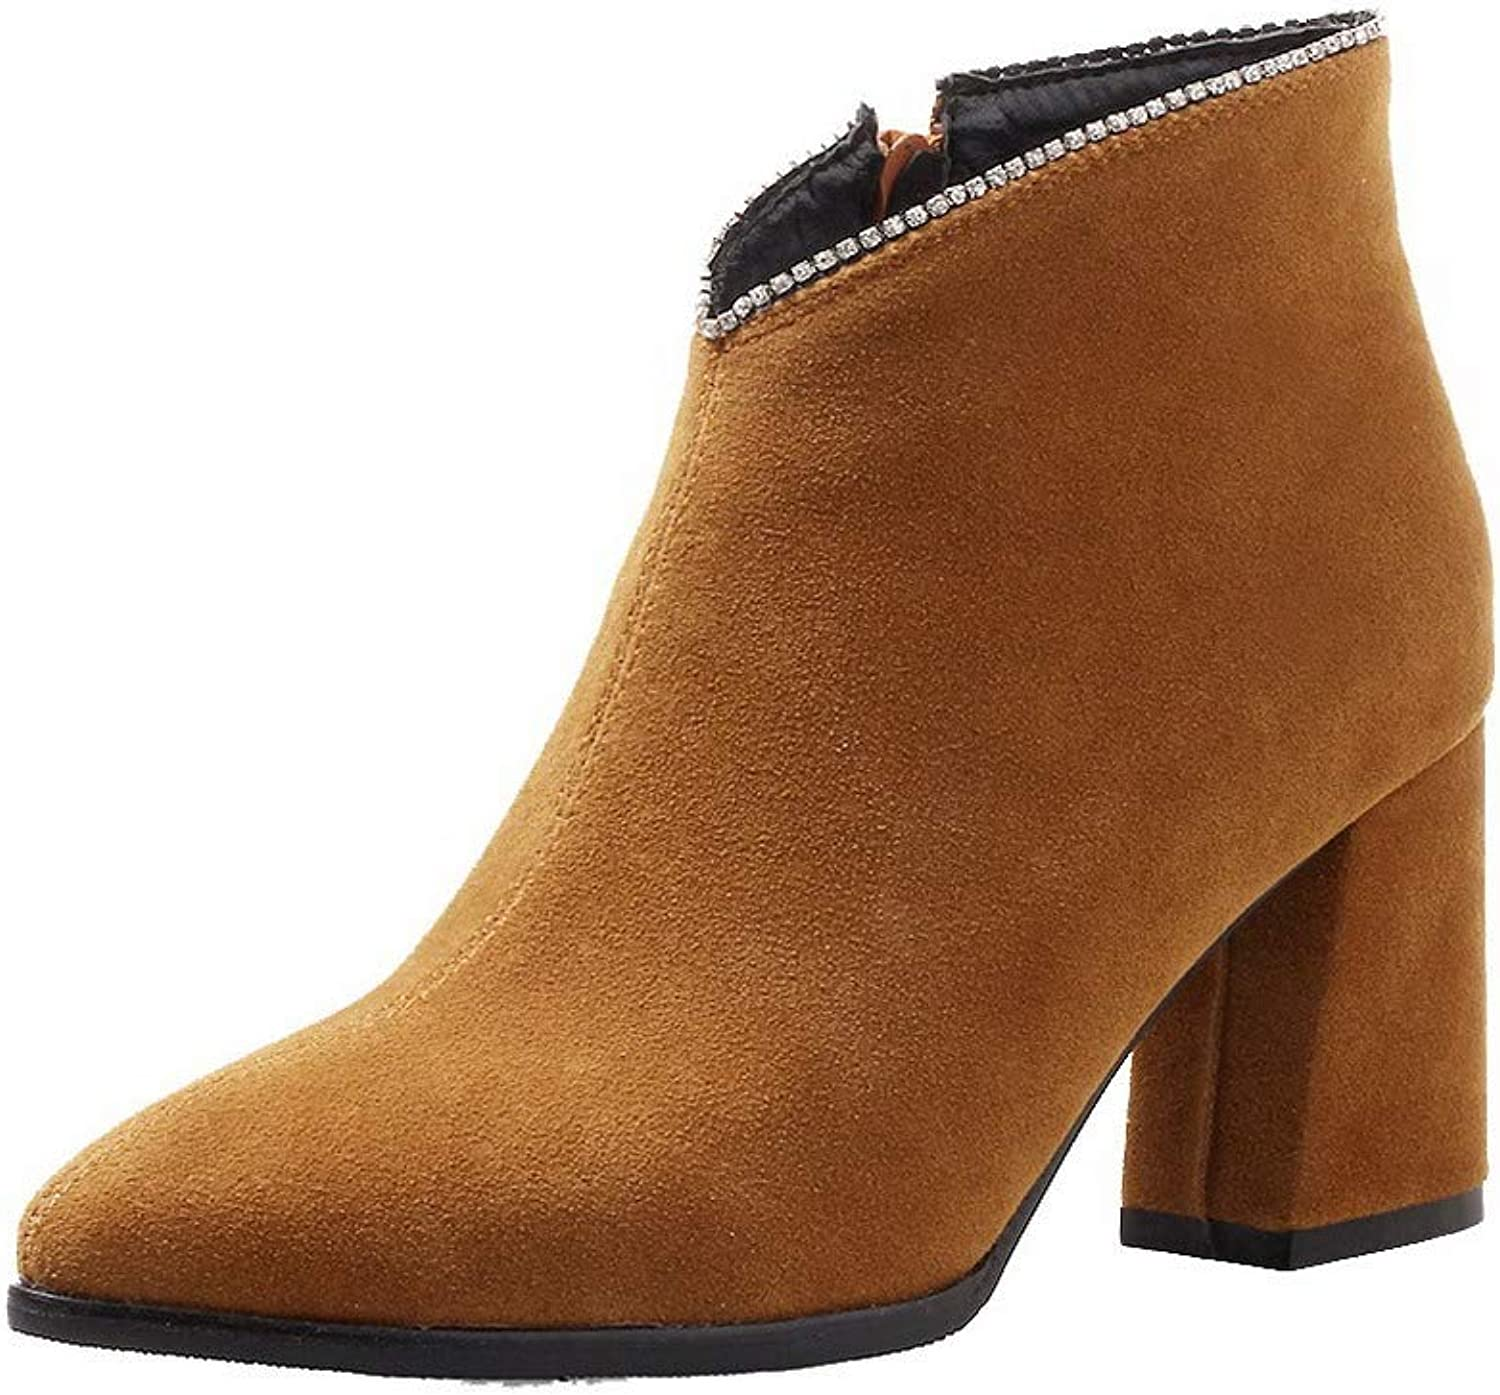 AmoonyFashion Women's Ankle-High Solid Zipper Pointed-Toe High-Heels Boots, BUSXT114773